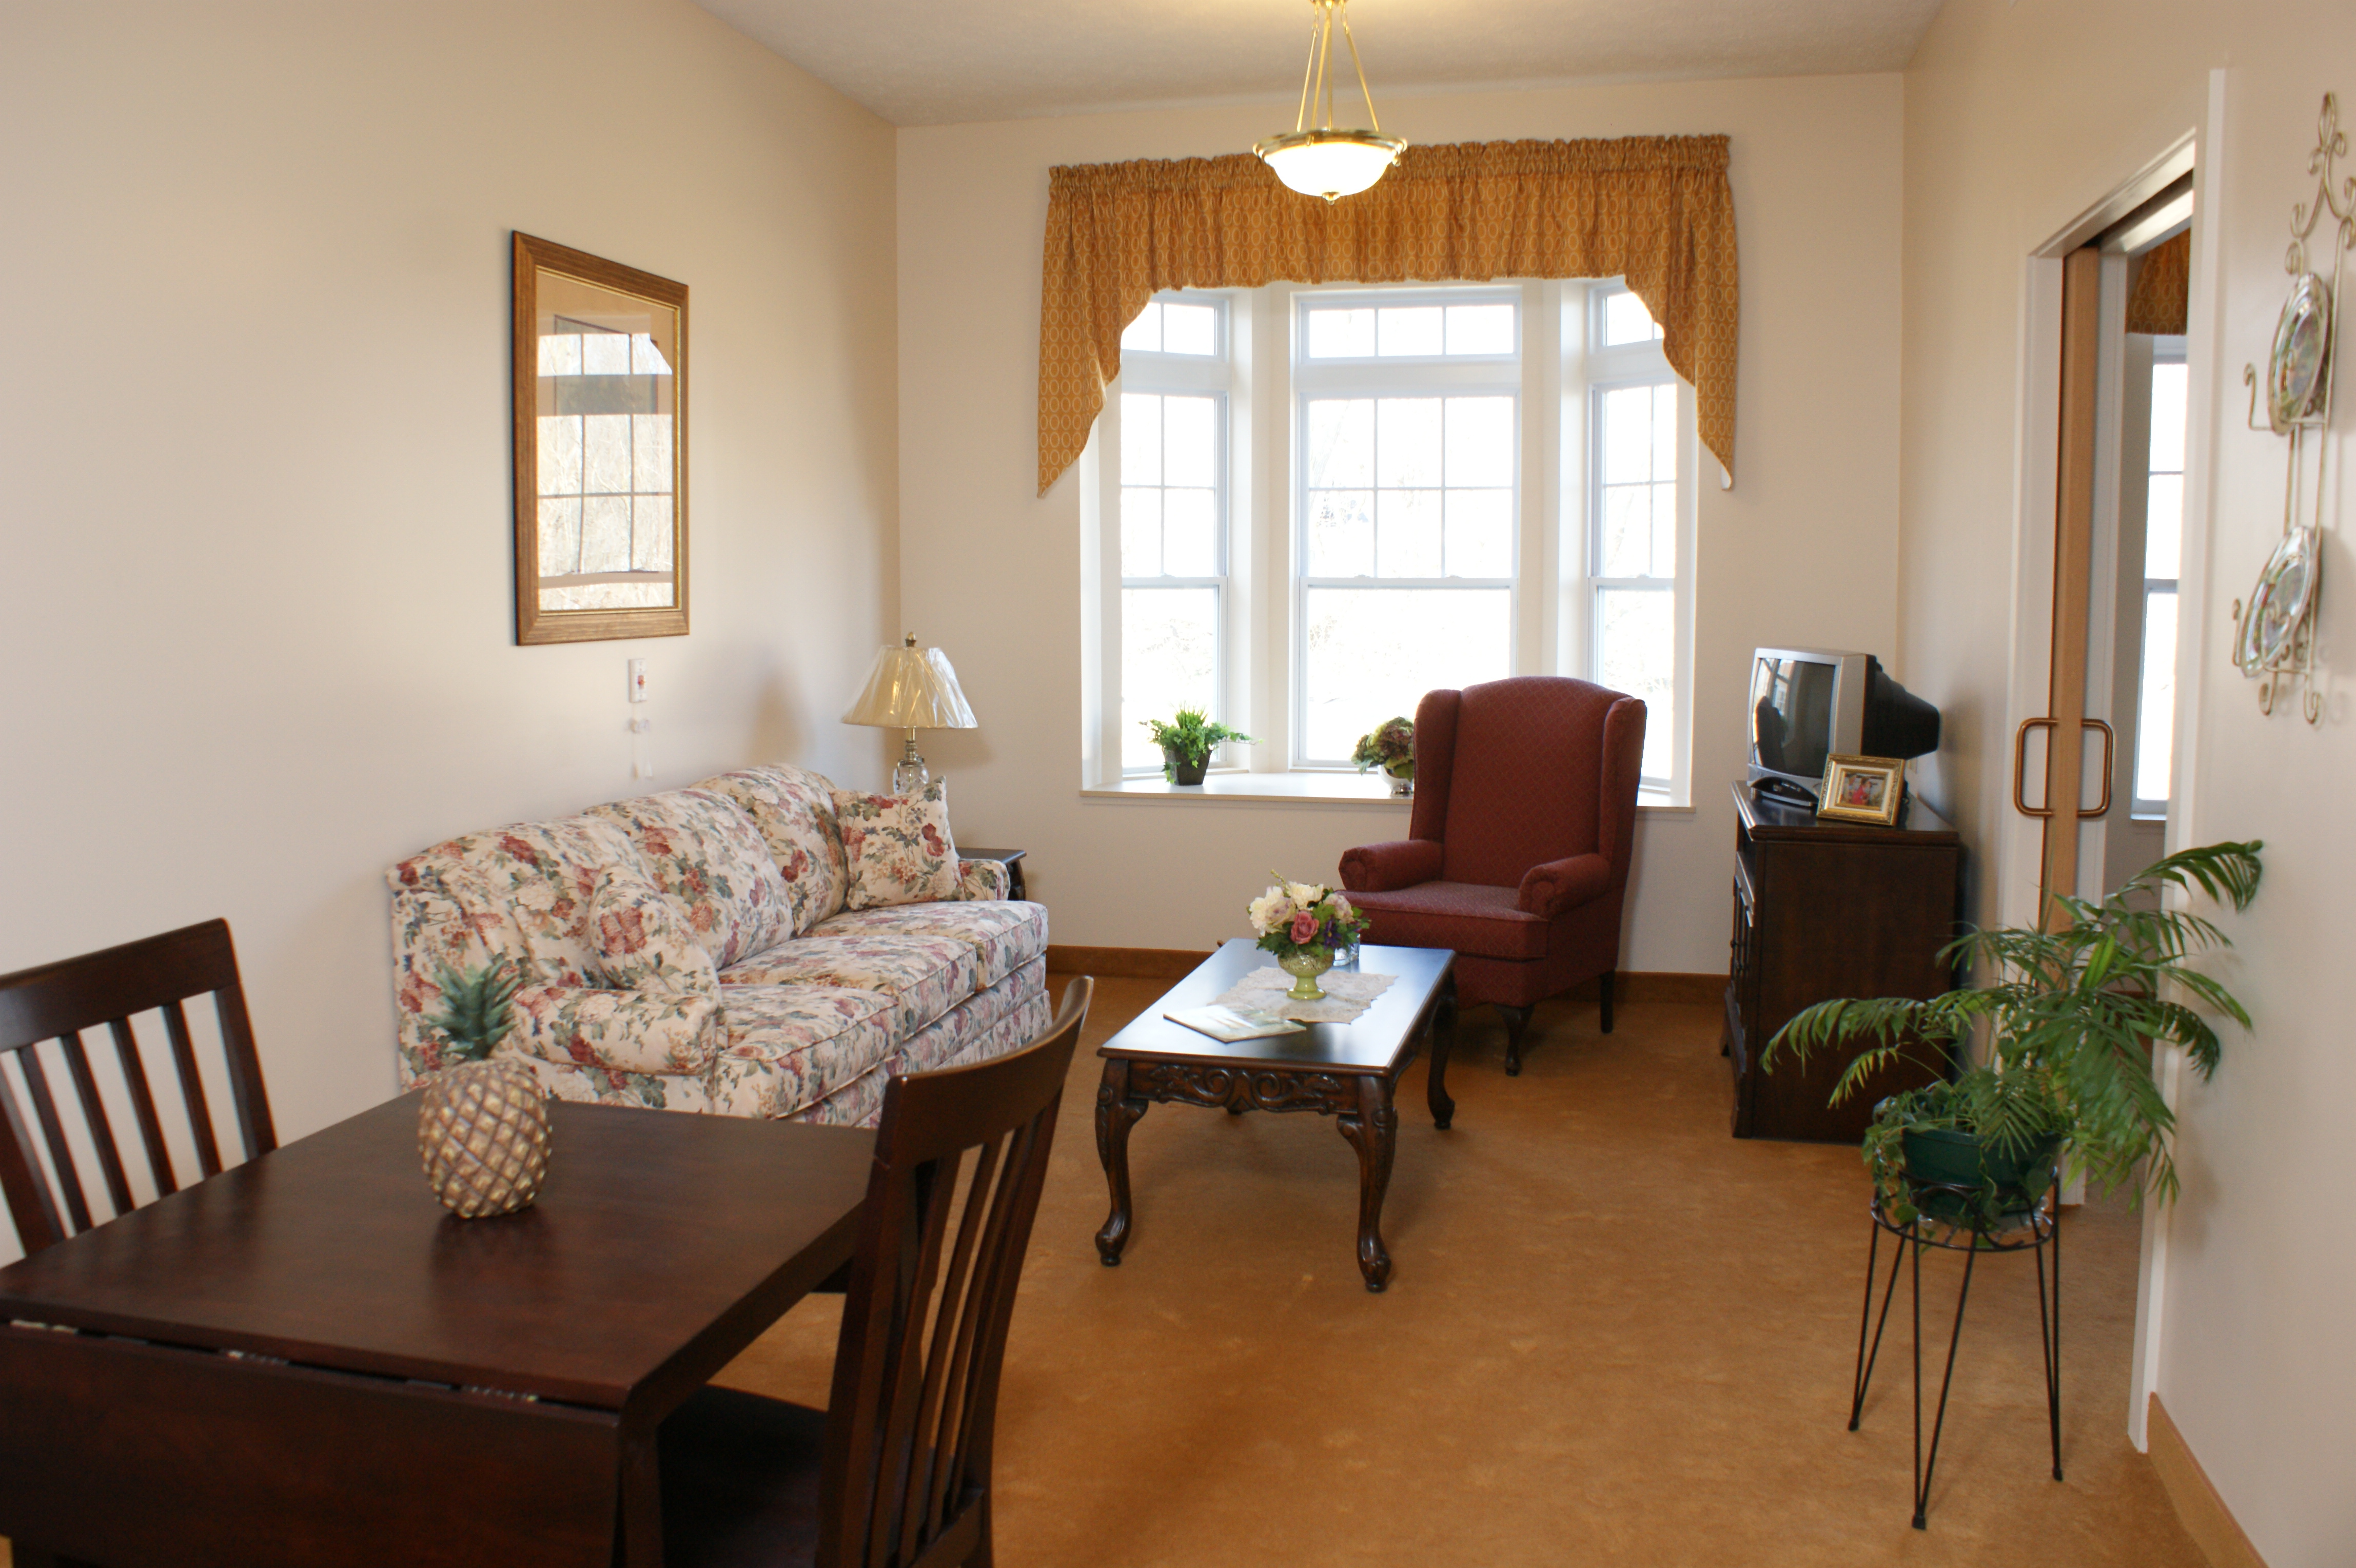 North Ridgeville Assisted Living Suite - Respite Furniture Included